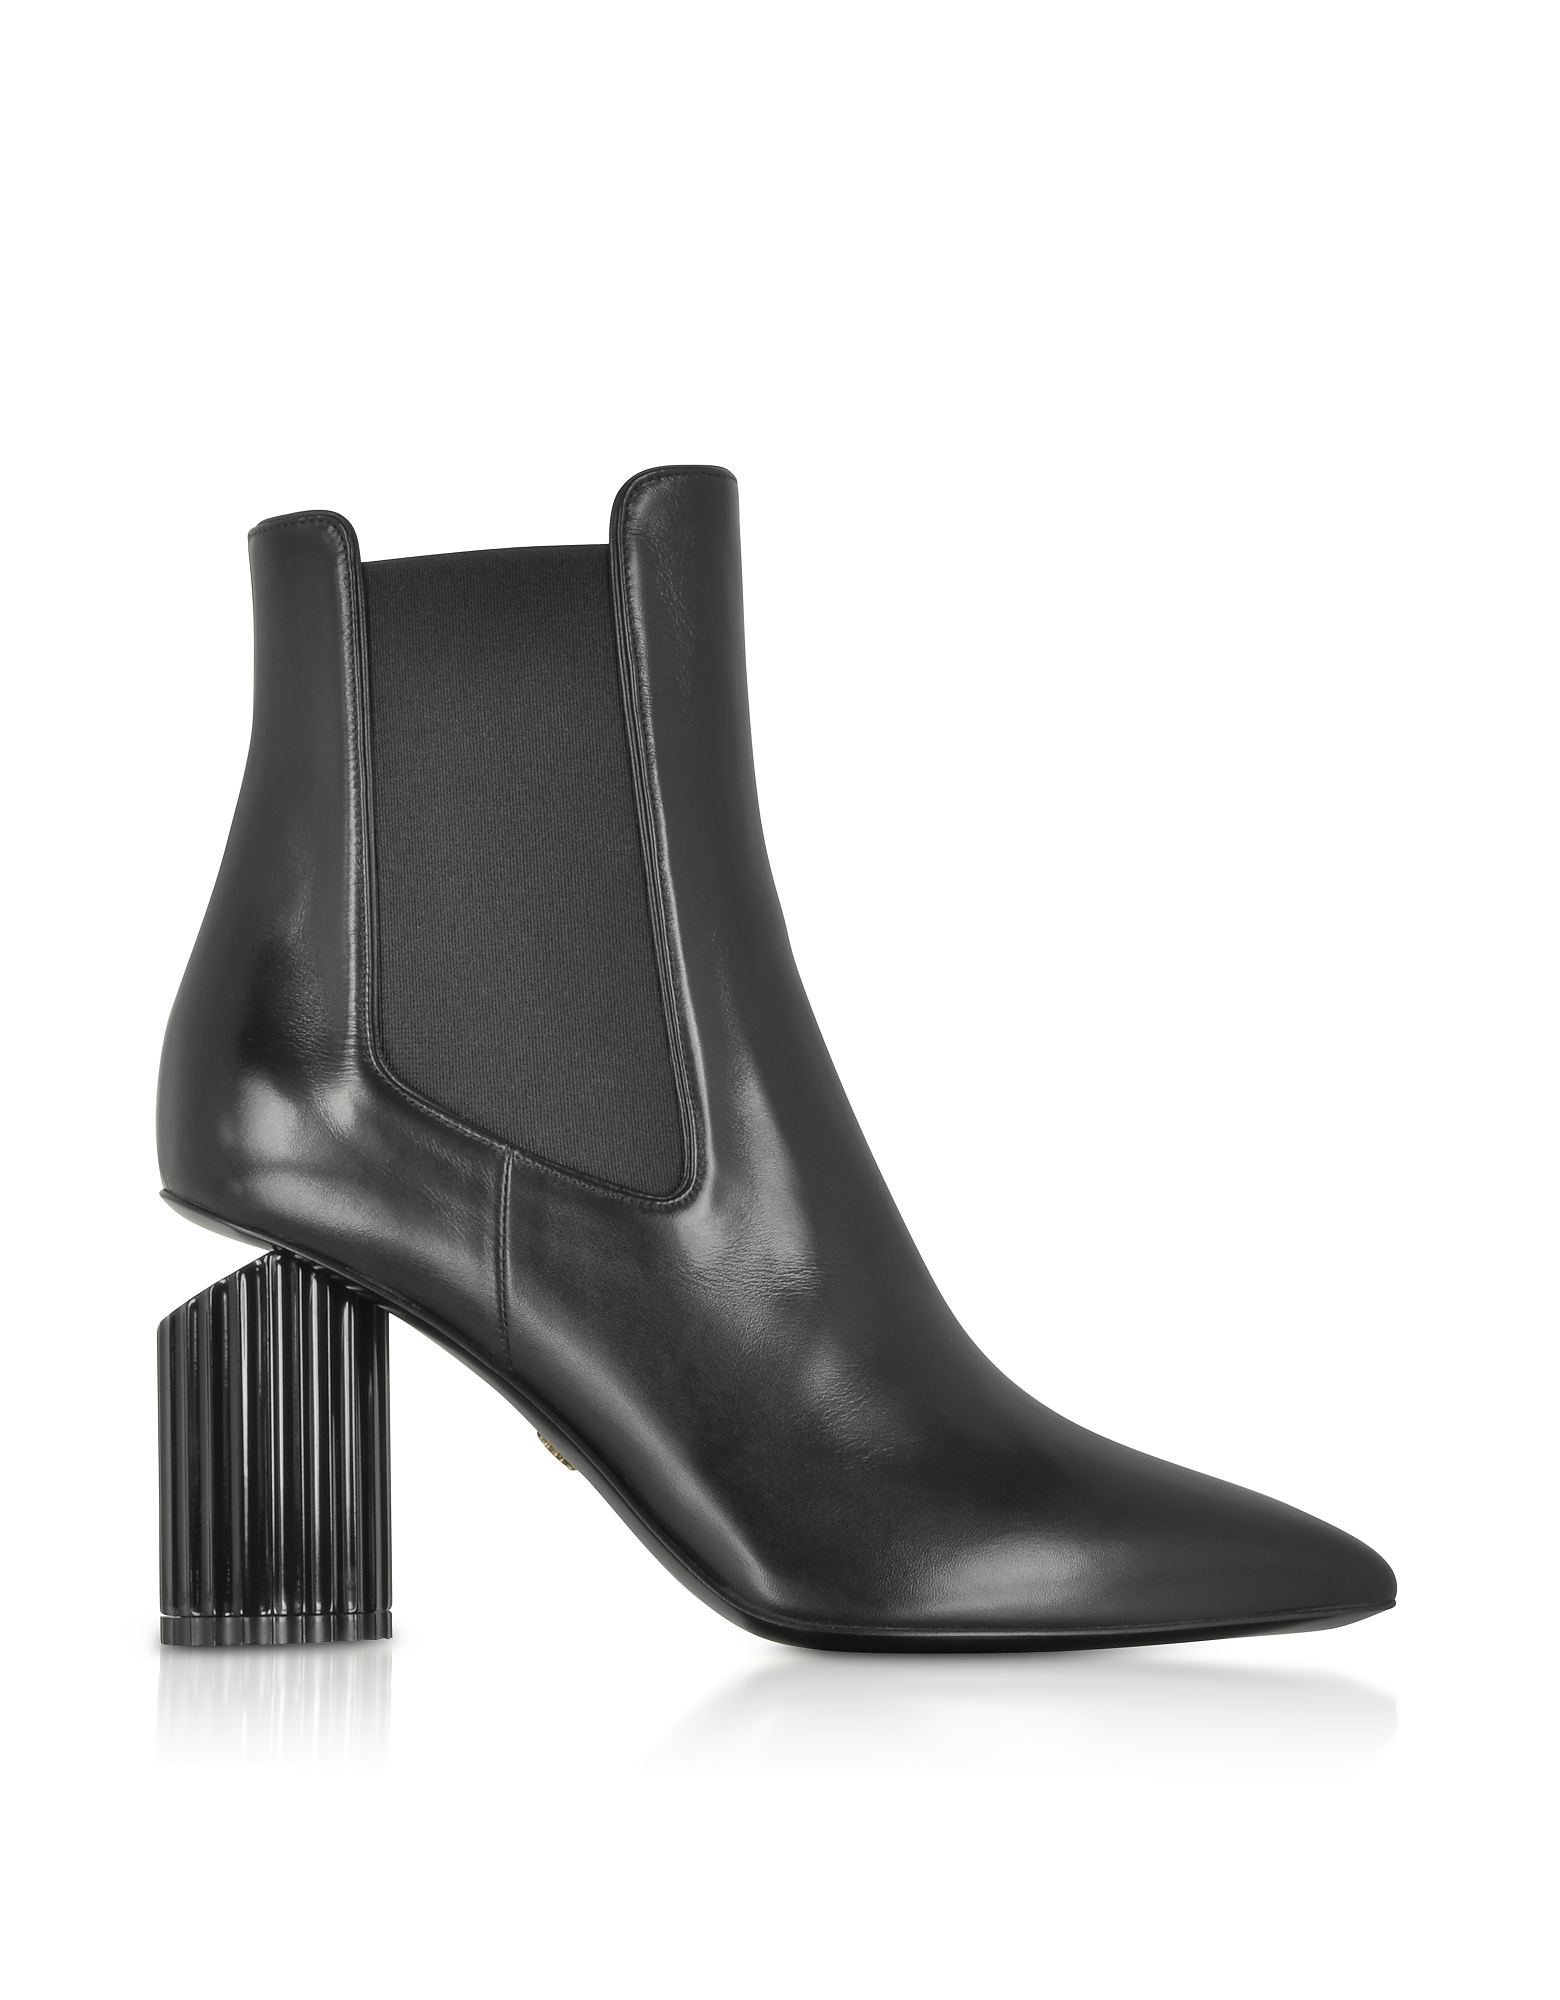 Roberto Cavalli Shoes, Black Leather Pointed Toe Heel Boots